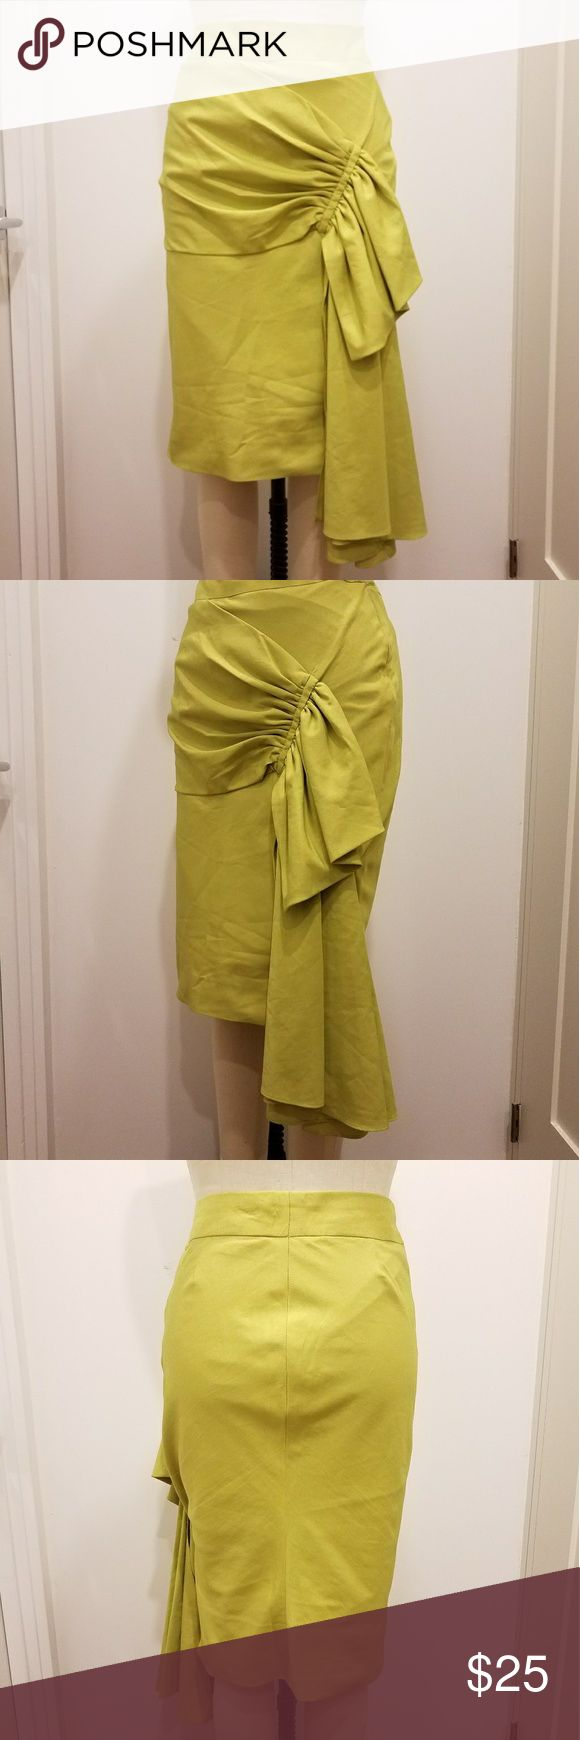 Selling this Chartreuse green 40s draped pencil SKIRT L.A.M.B 6 on Poshmark! My username is: cheapthrillz83. #shopmycloset #poshmark #fashion #shopping #style #forsale #handmade #Dresses & Skirts